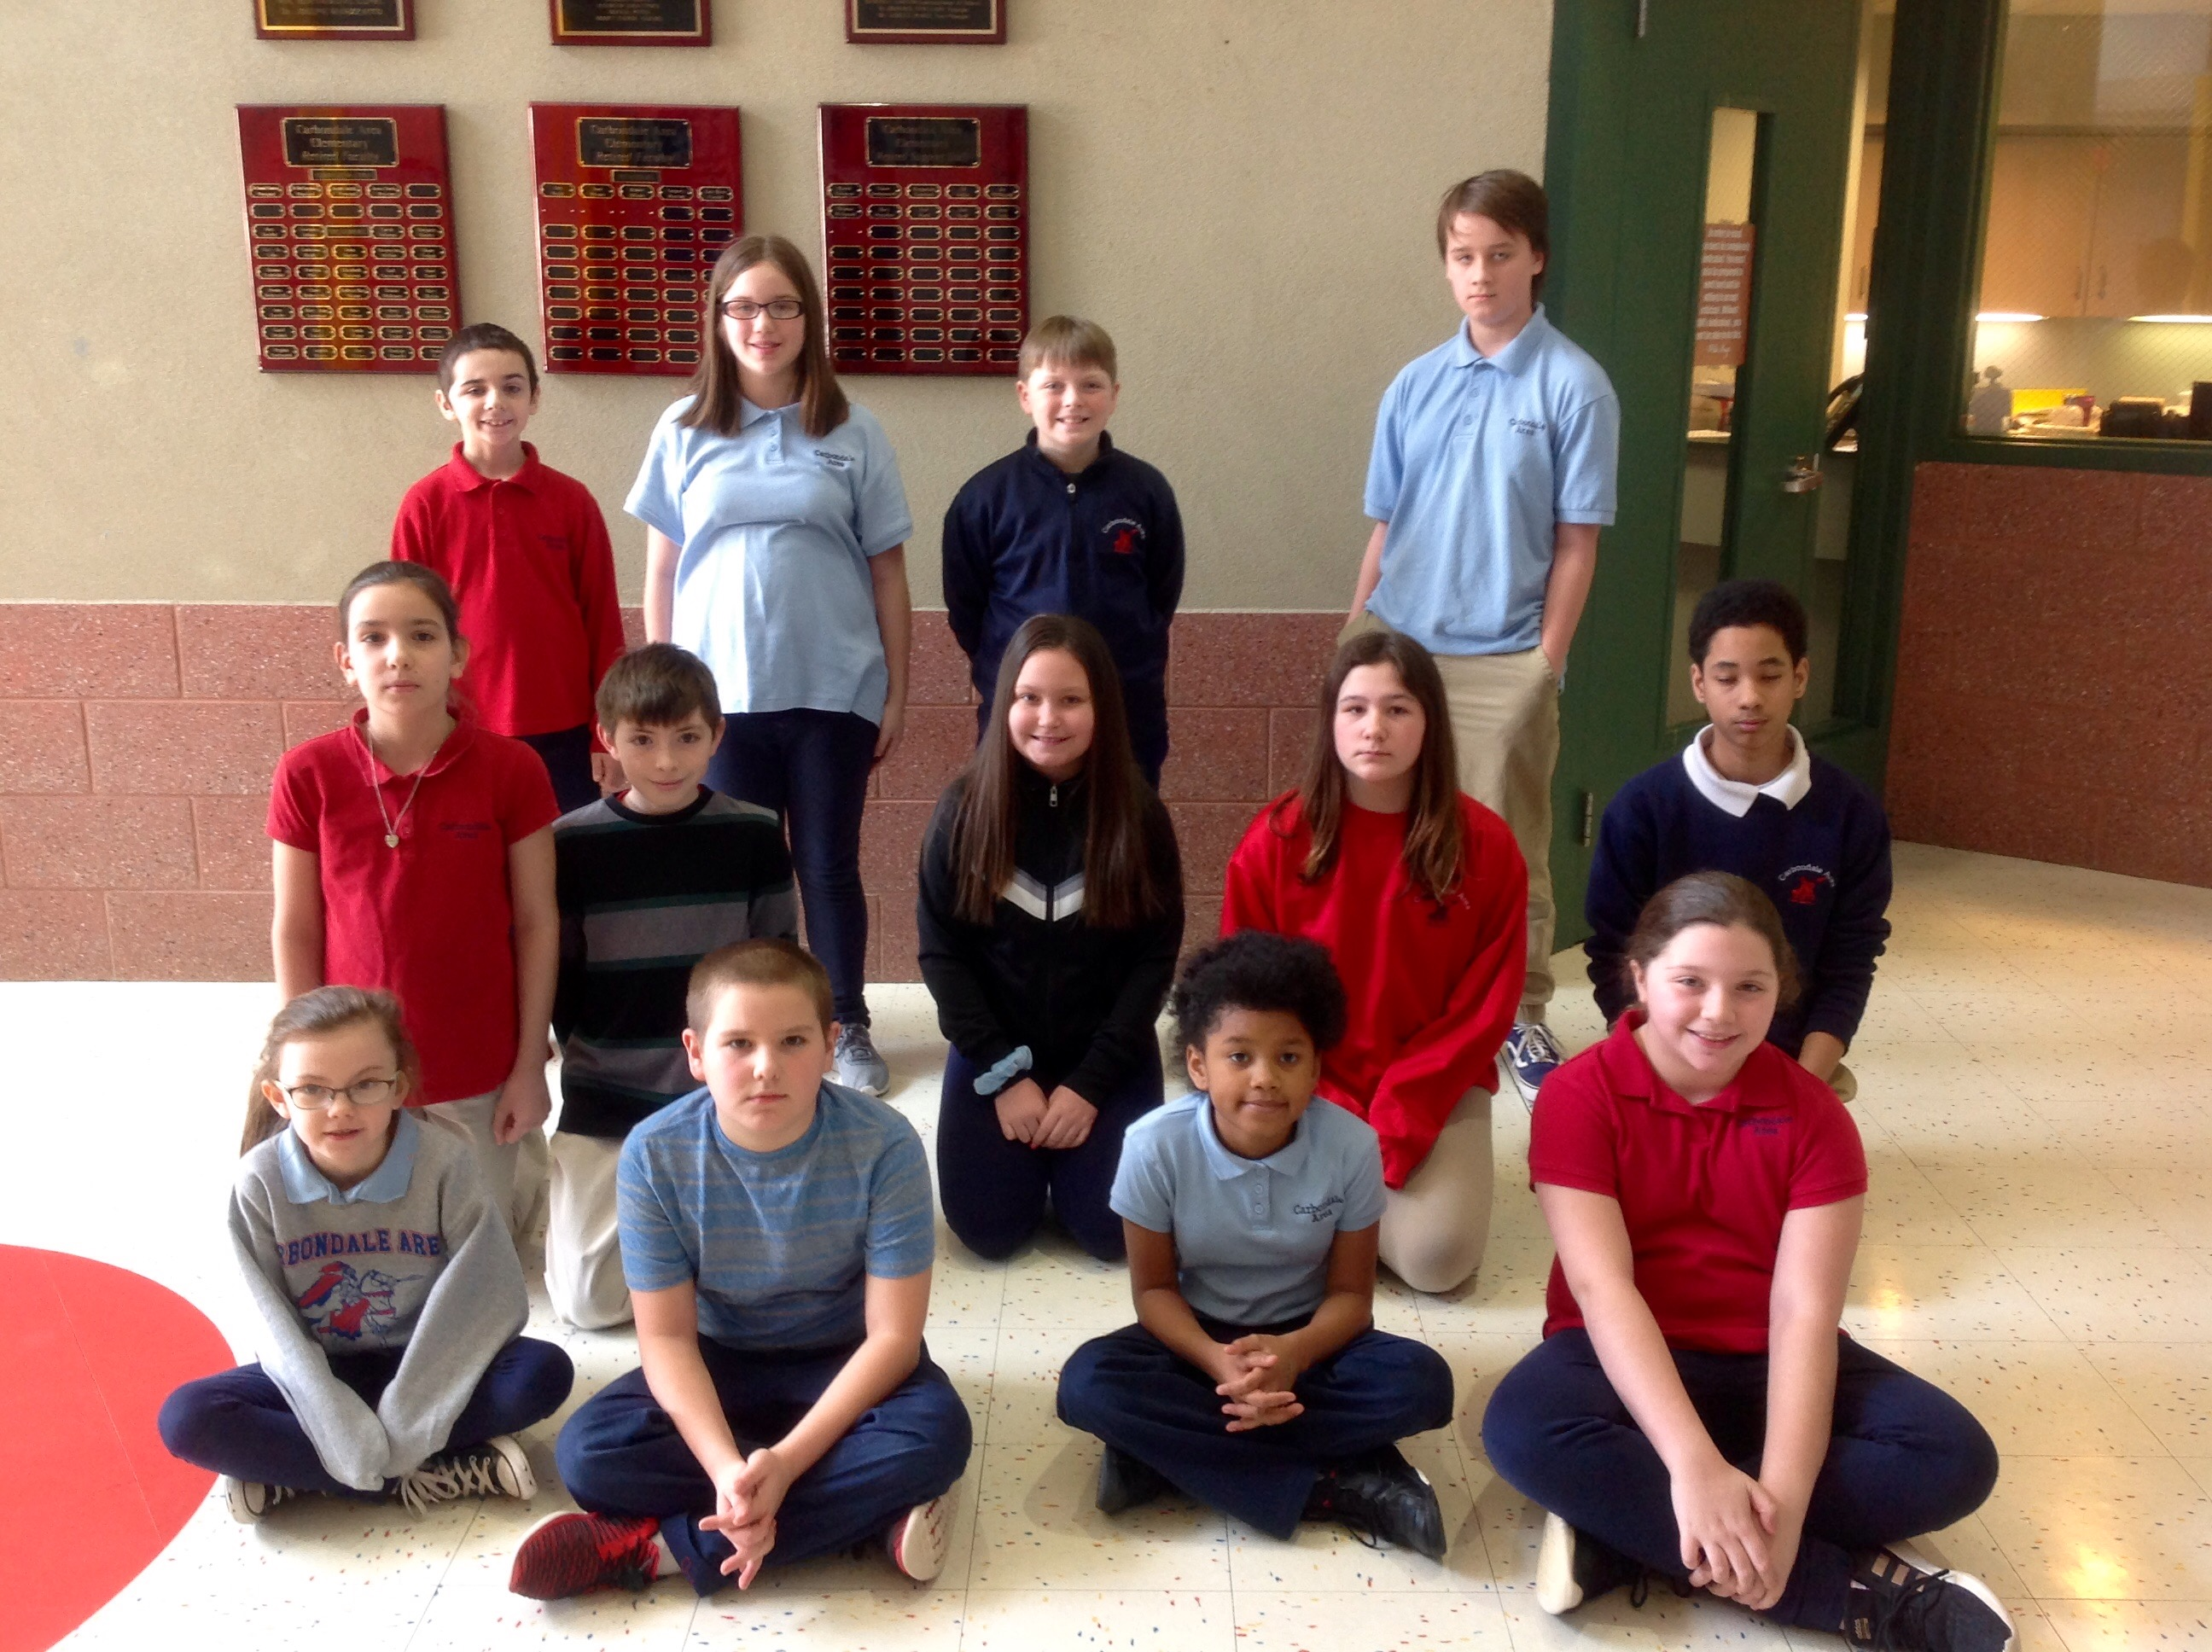 4th-6th Grade Citizens of the Month for January